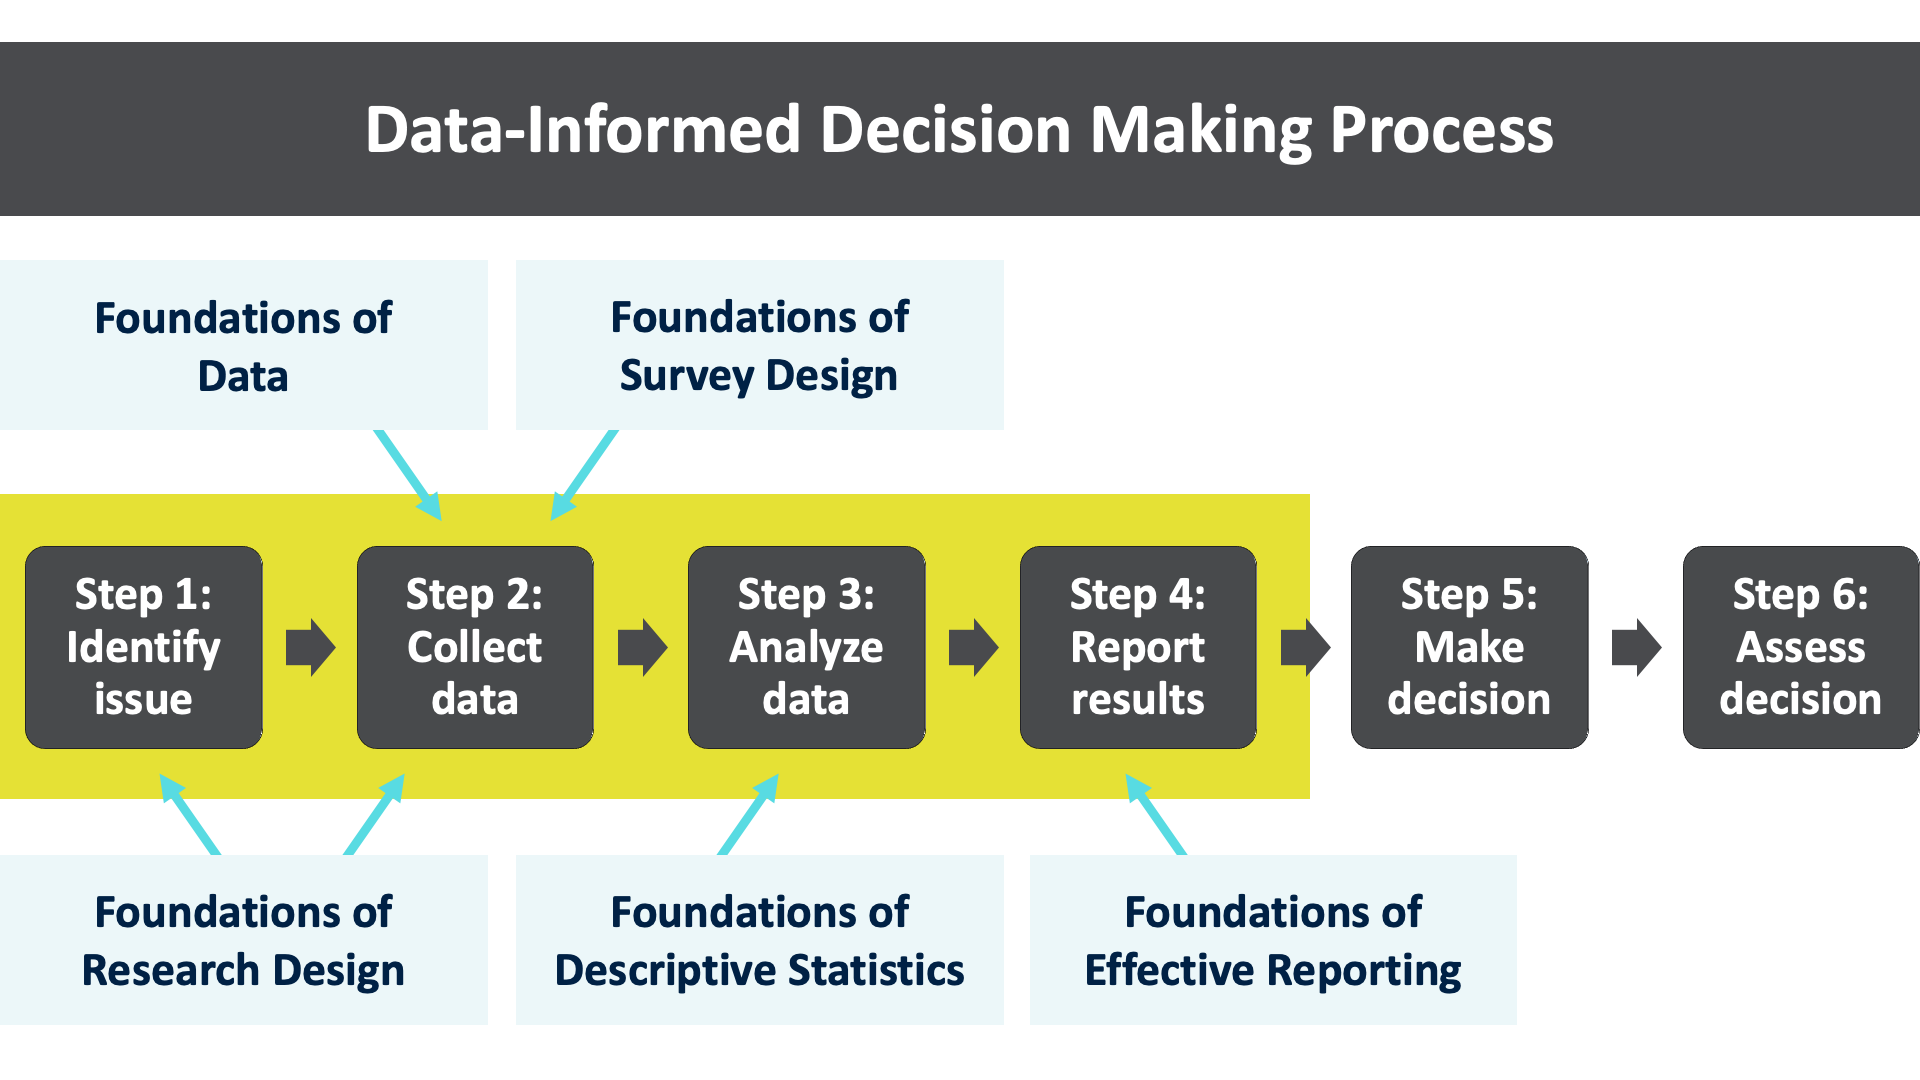 Data-Informed Decision Making Process